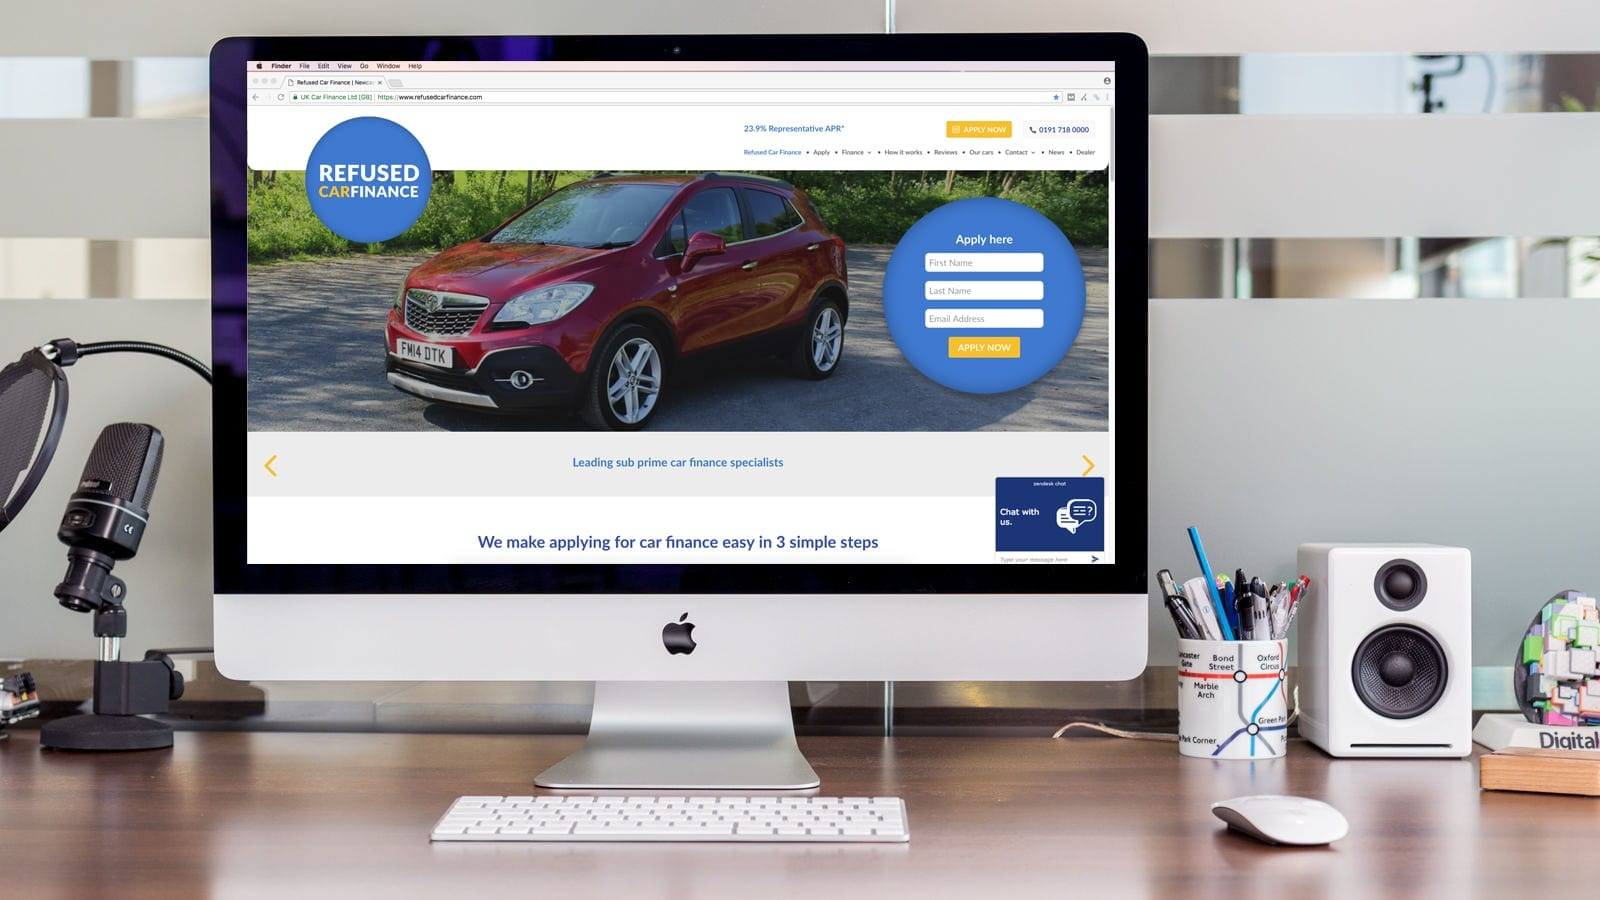 Refused Car Finance Celebrate Rapid Growth With Major Rebrand